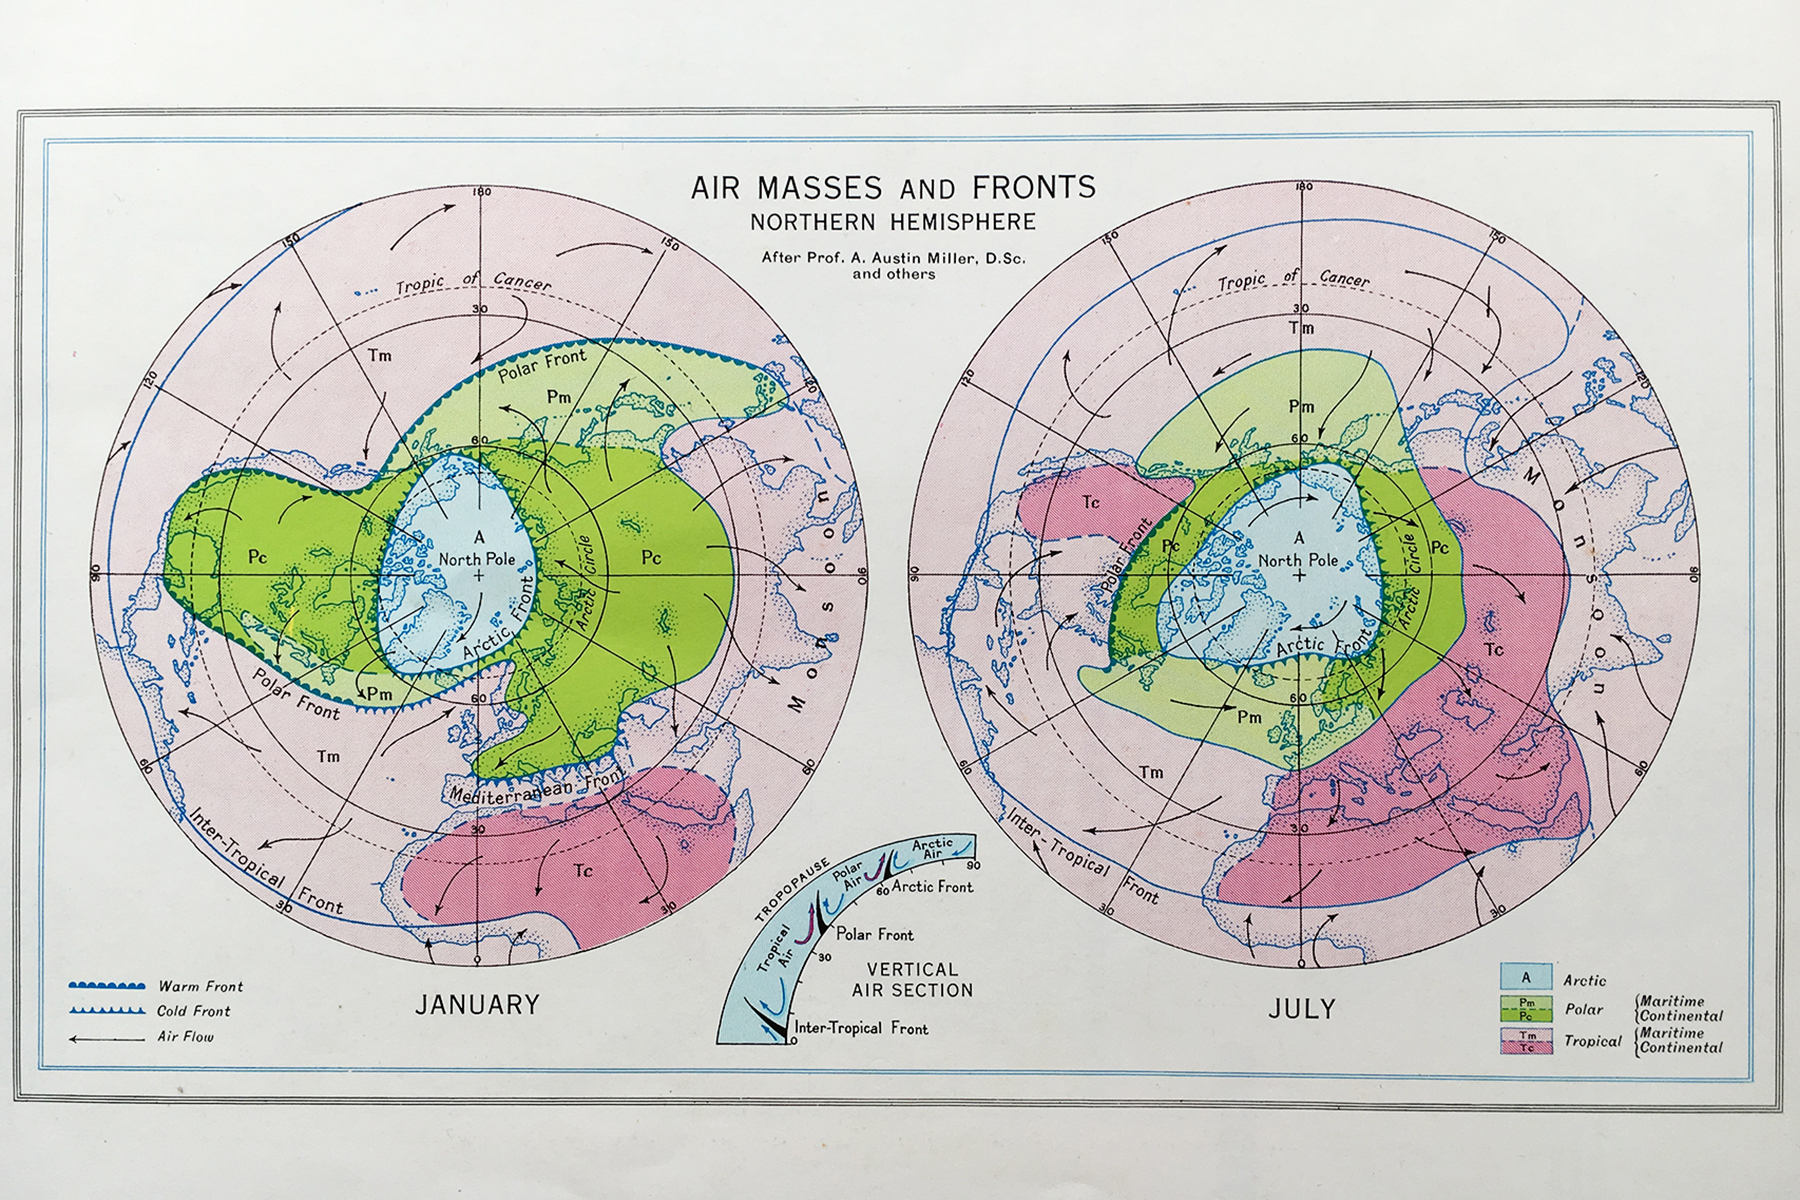 air masses and fronts in the northern hemisphere